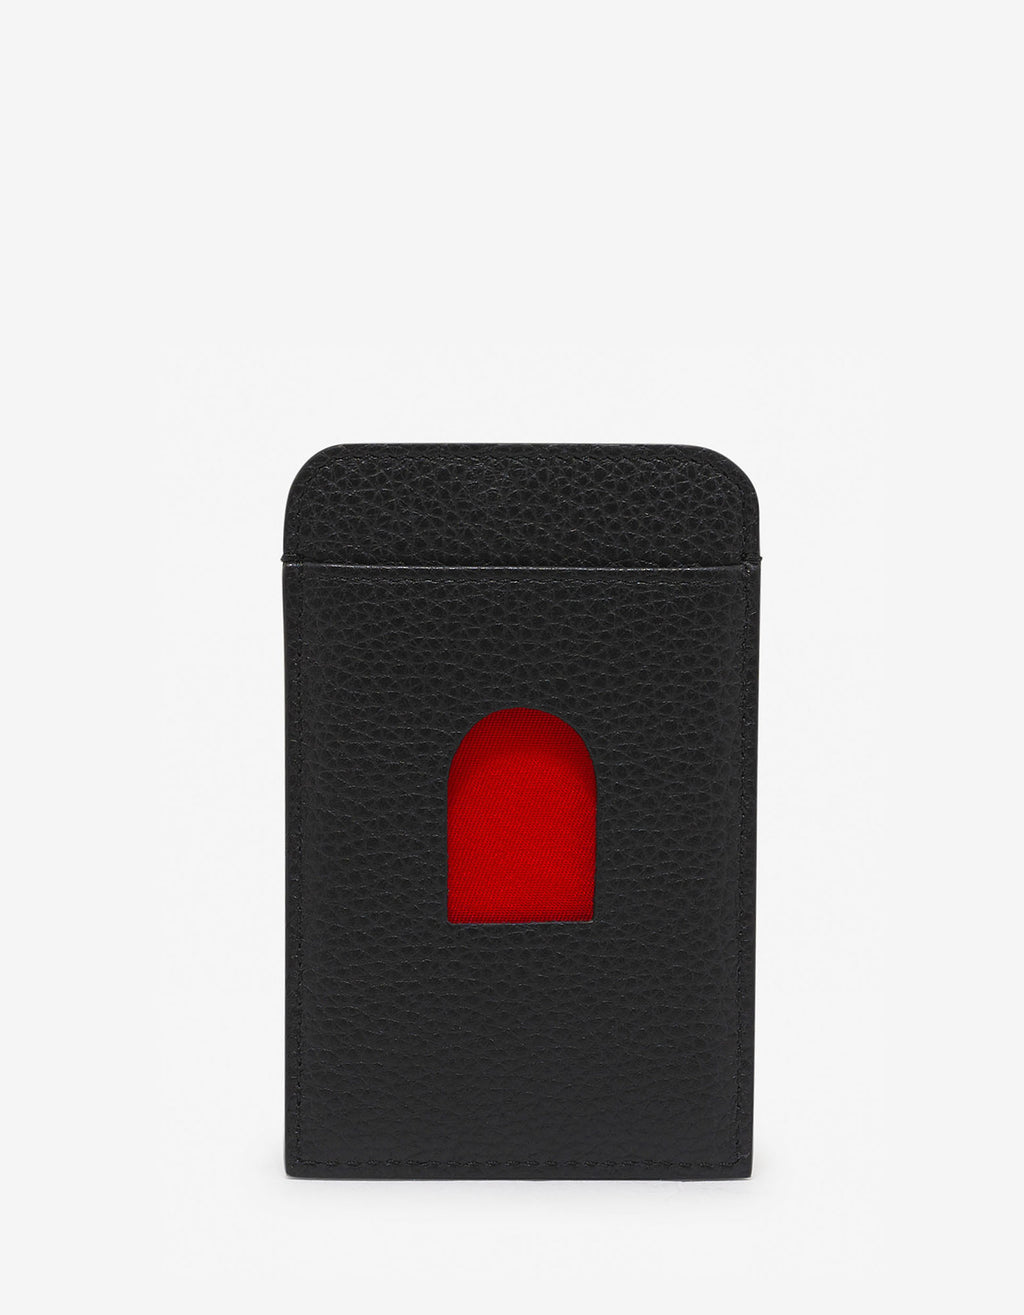 Loubislide Sneakers Sole Black Card Holder